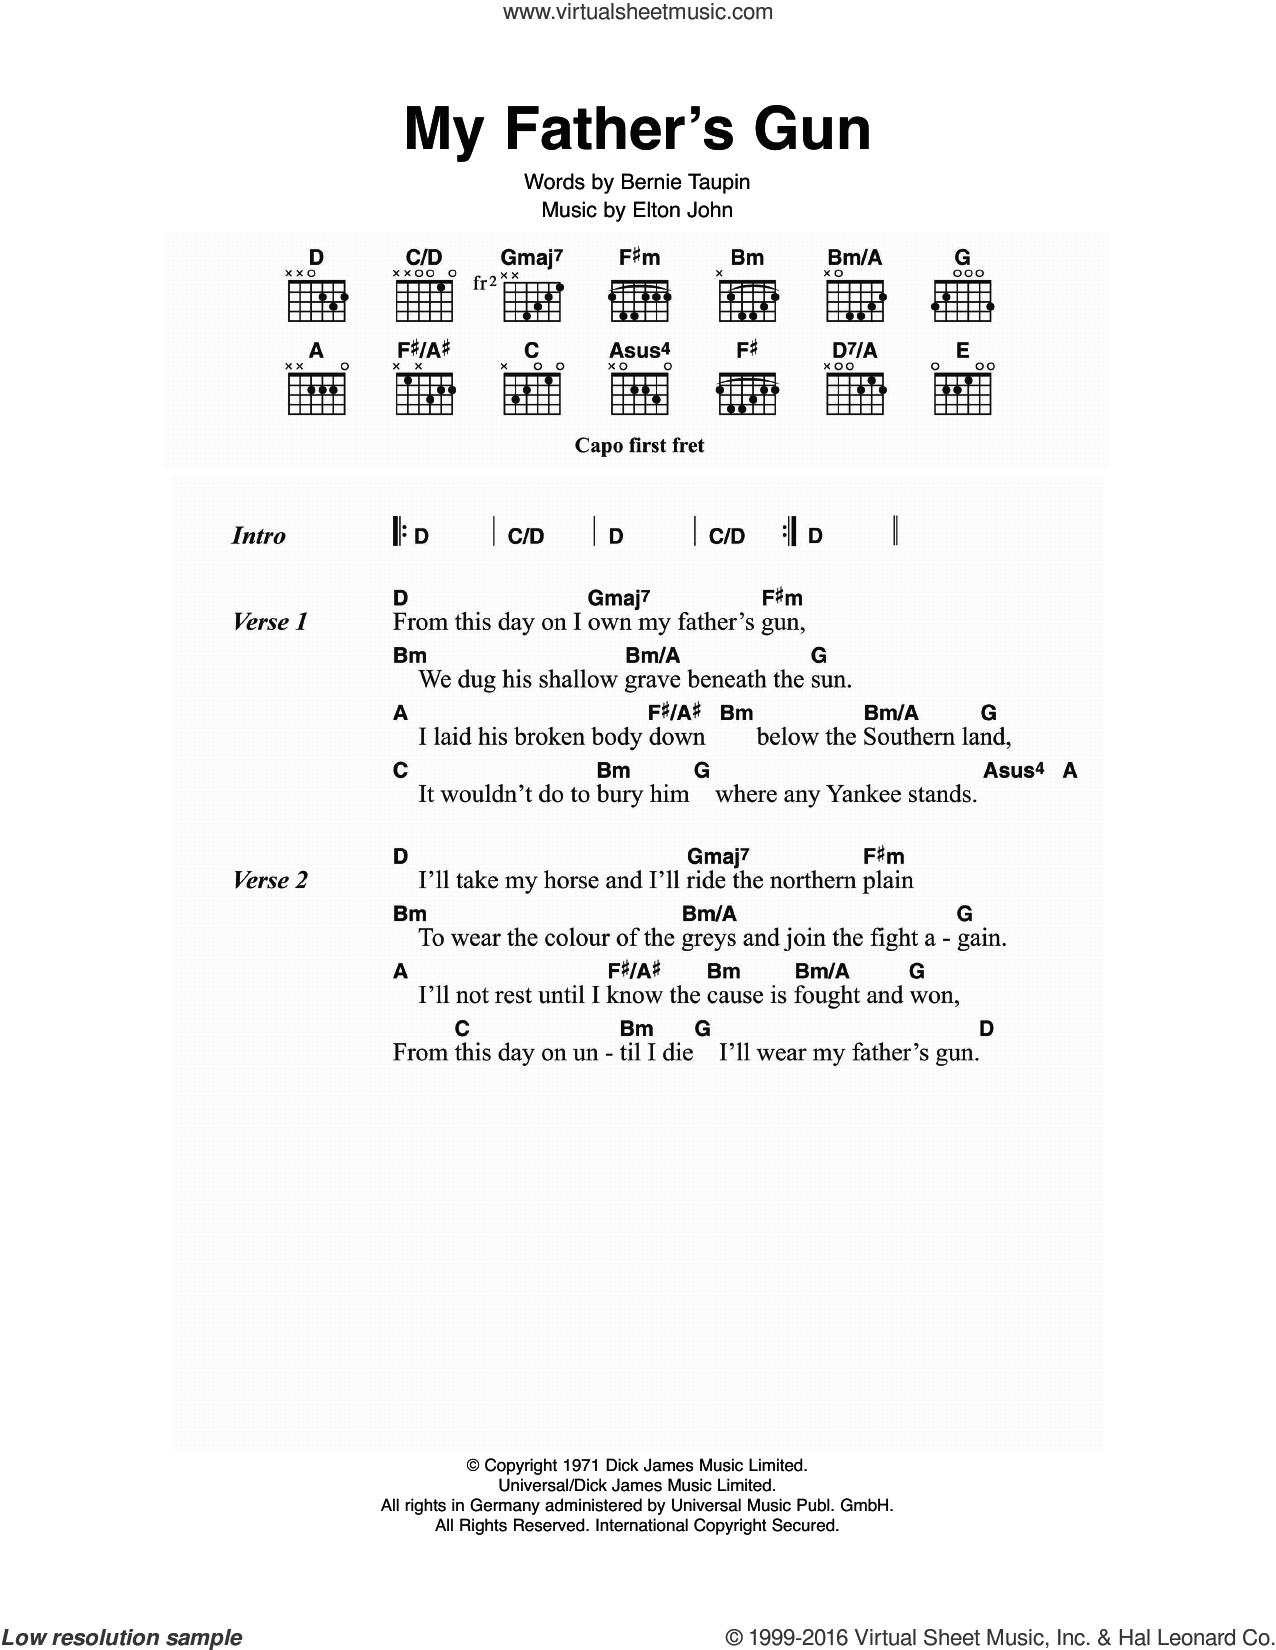 My Father's Gun sheet music for guitar (chords) by Bernie Taupin